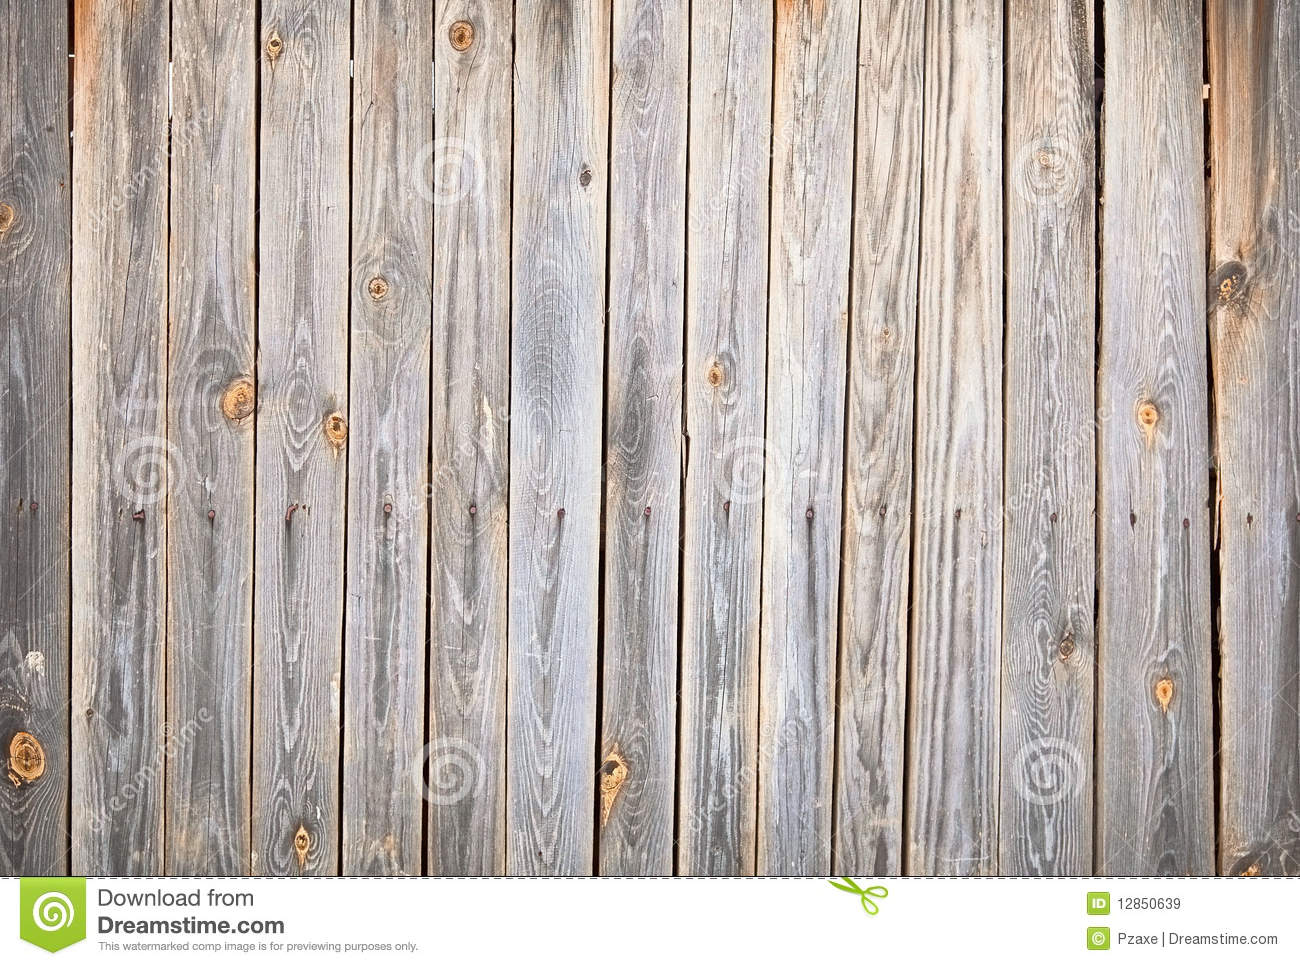 Textured background of old wooden fence stock image